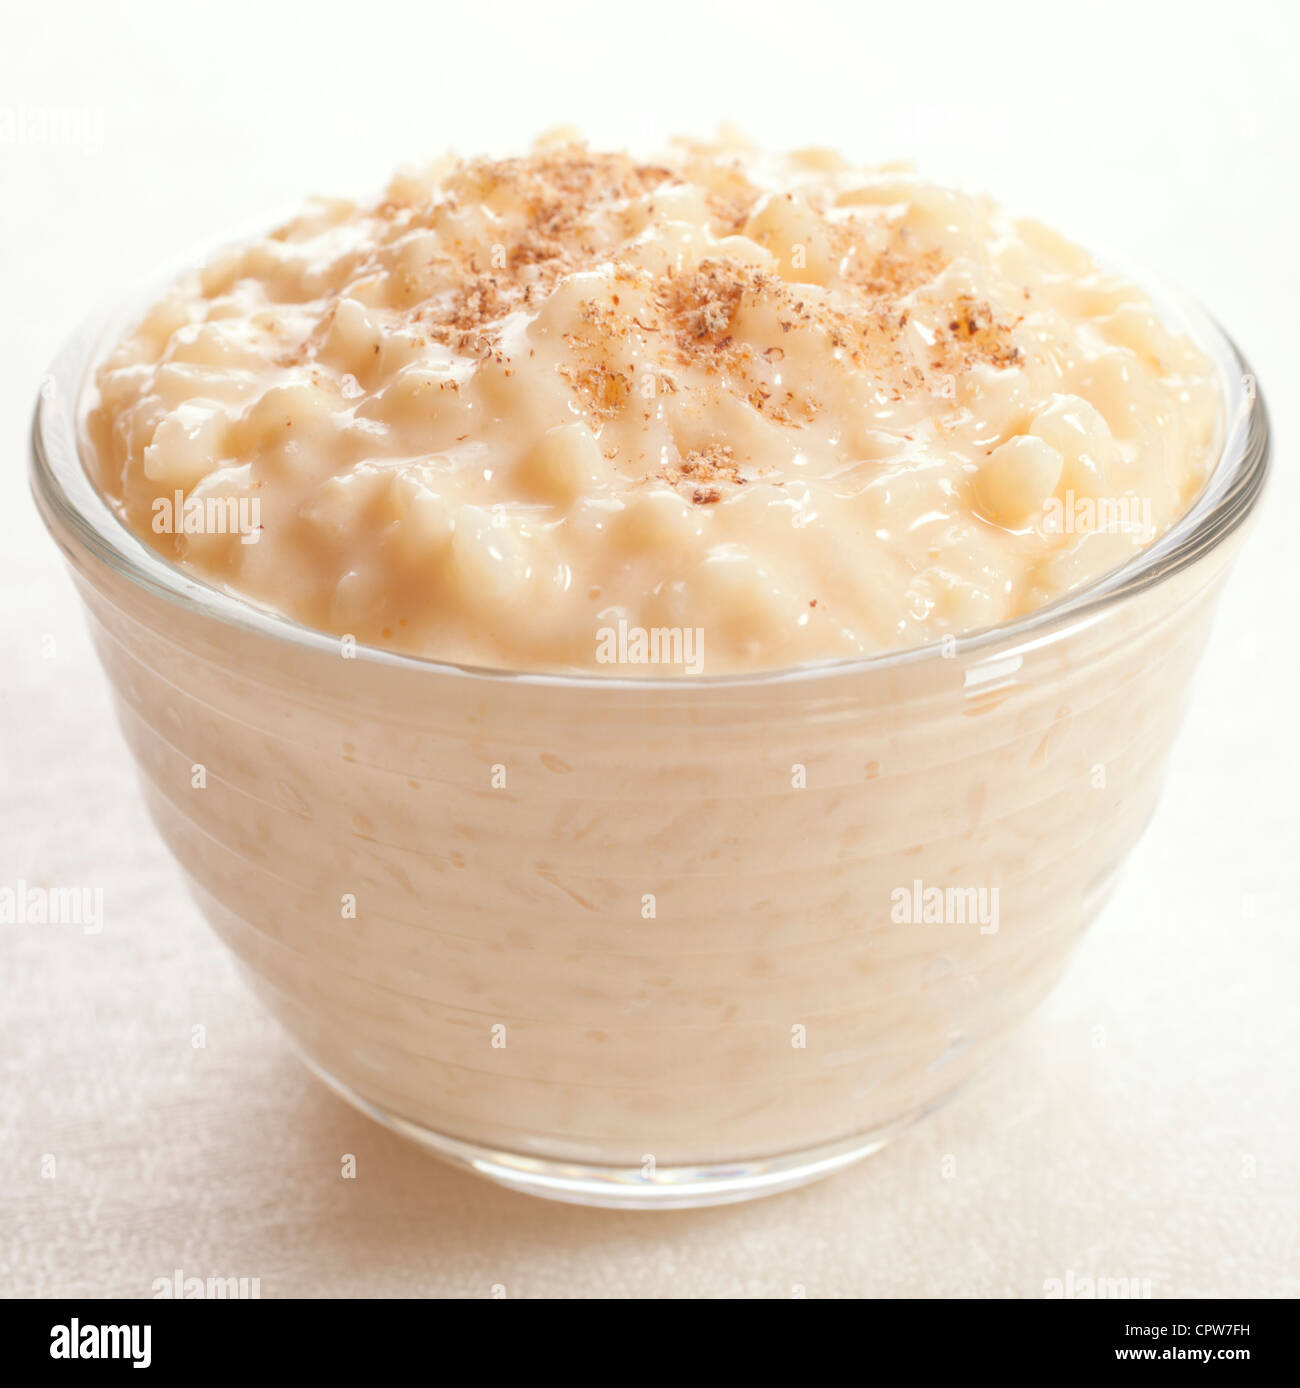 Rice pudding sprinkled with nutmeg in an individual glass bowl. - Stock Image